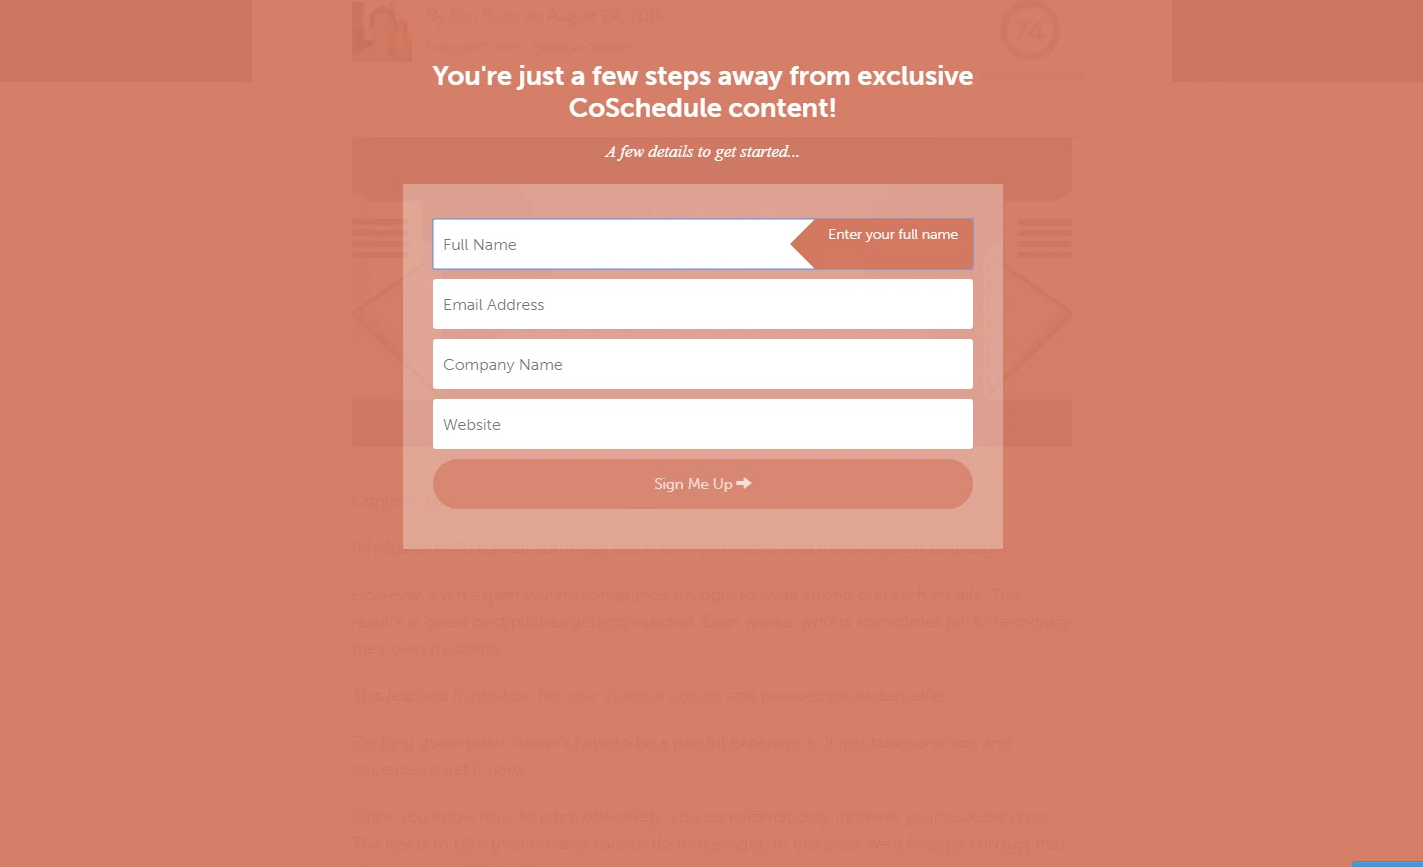 an exit pop up on Coschedule